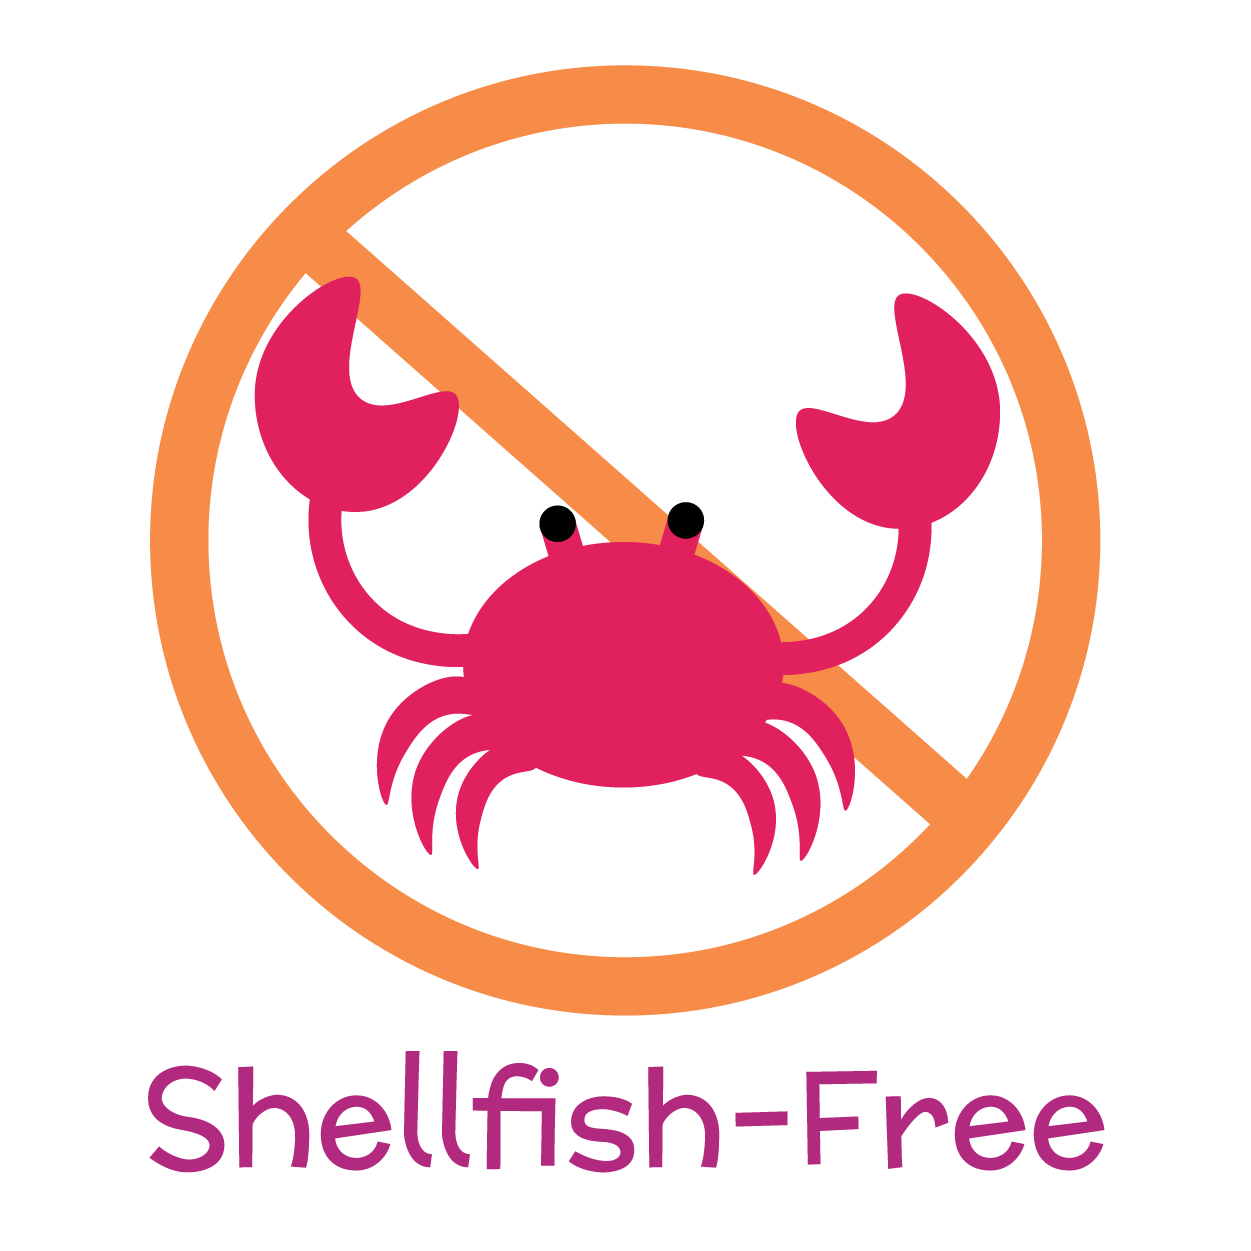 shellfish-free-icon-nomster-chef.png